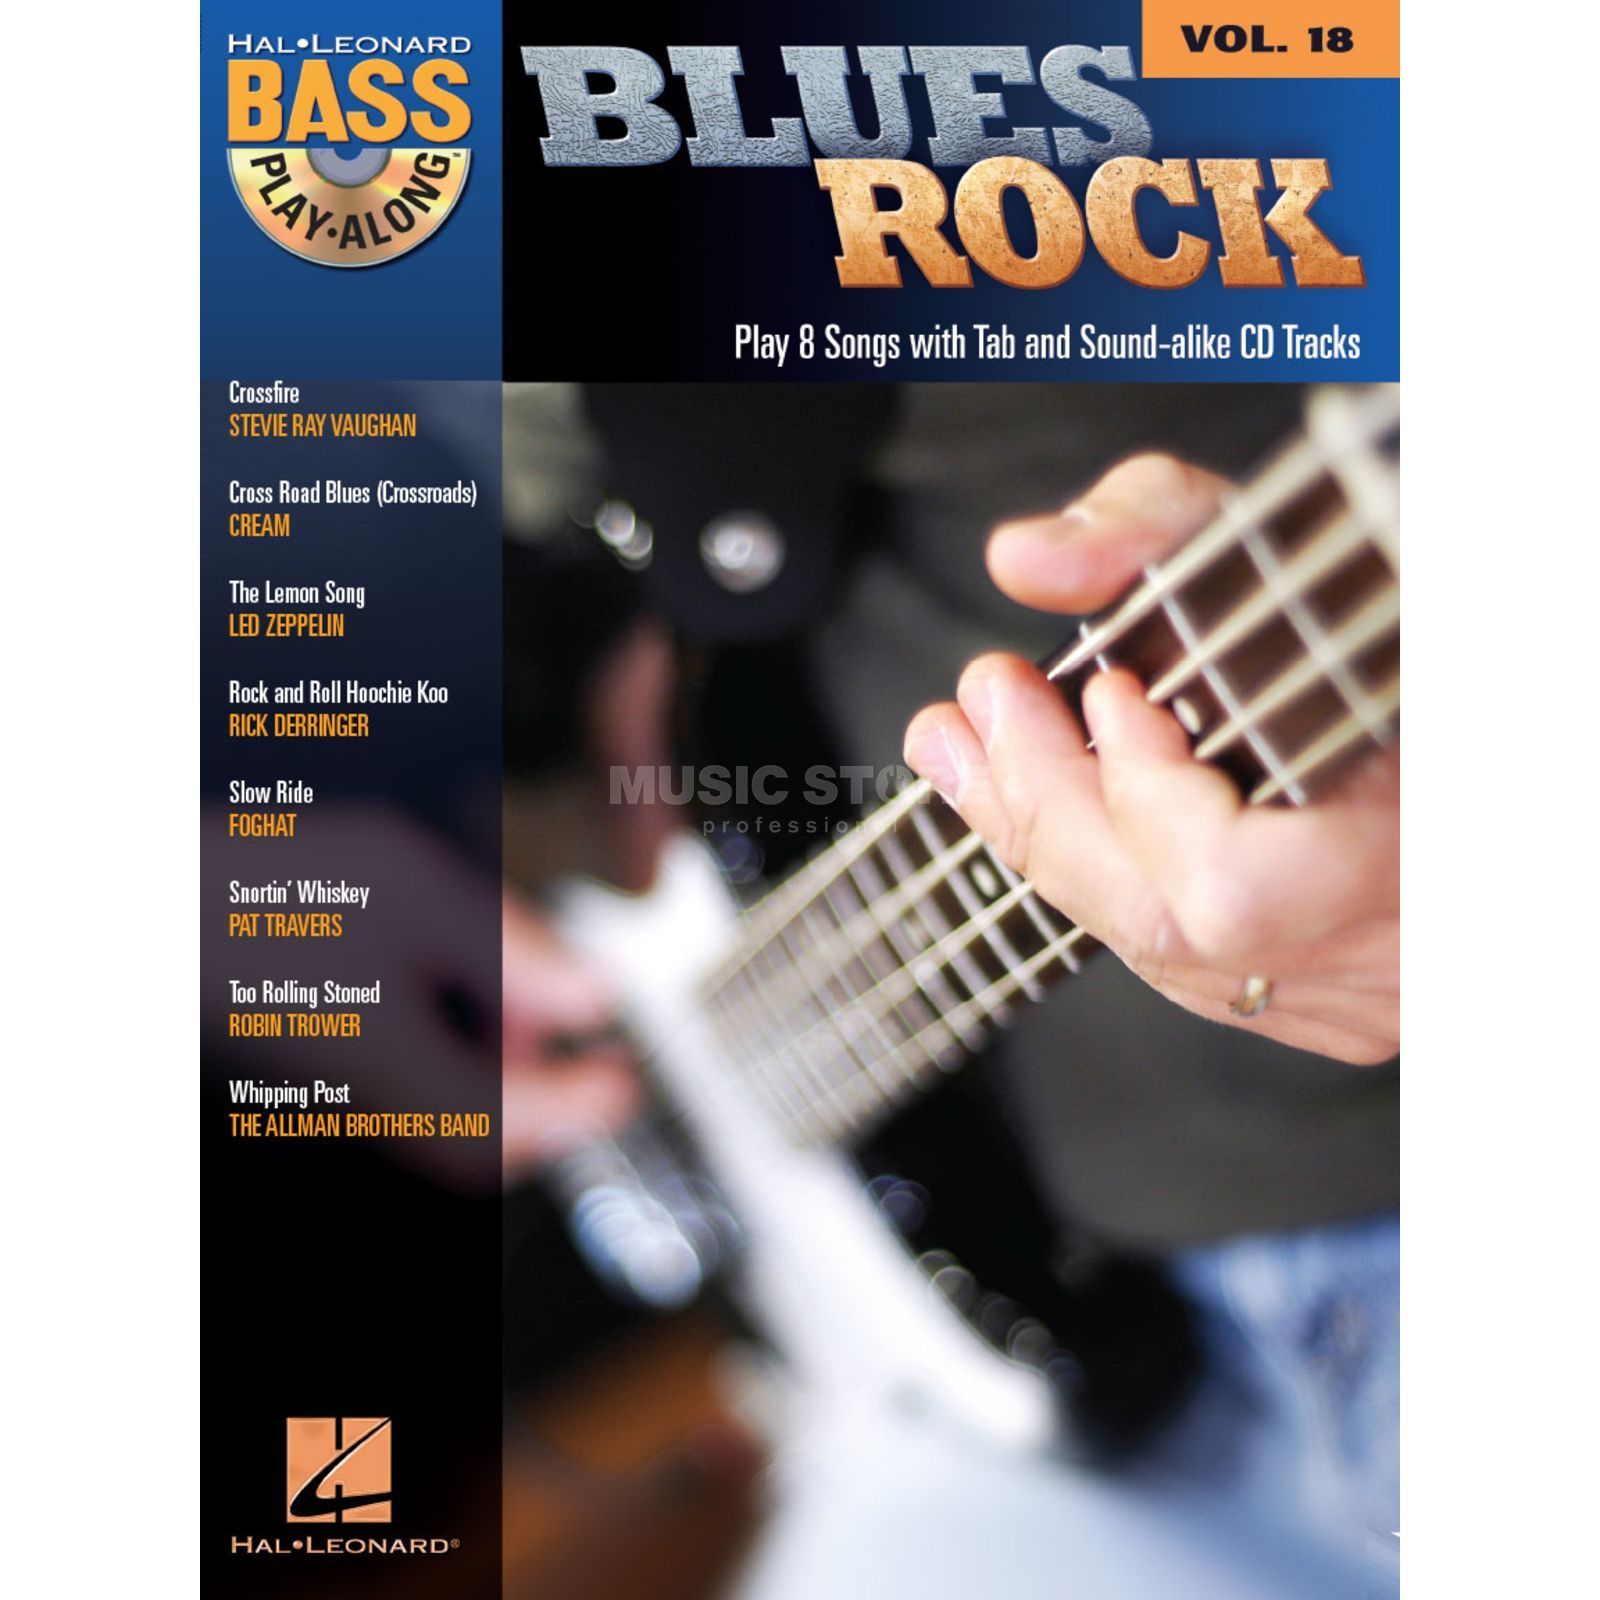 Hal Leonard Bass Play-Along - Blues Rock Vol. 18, Bass TAB Produktbild